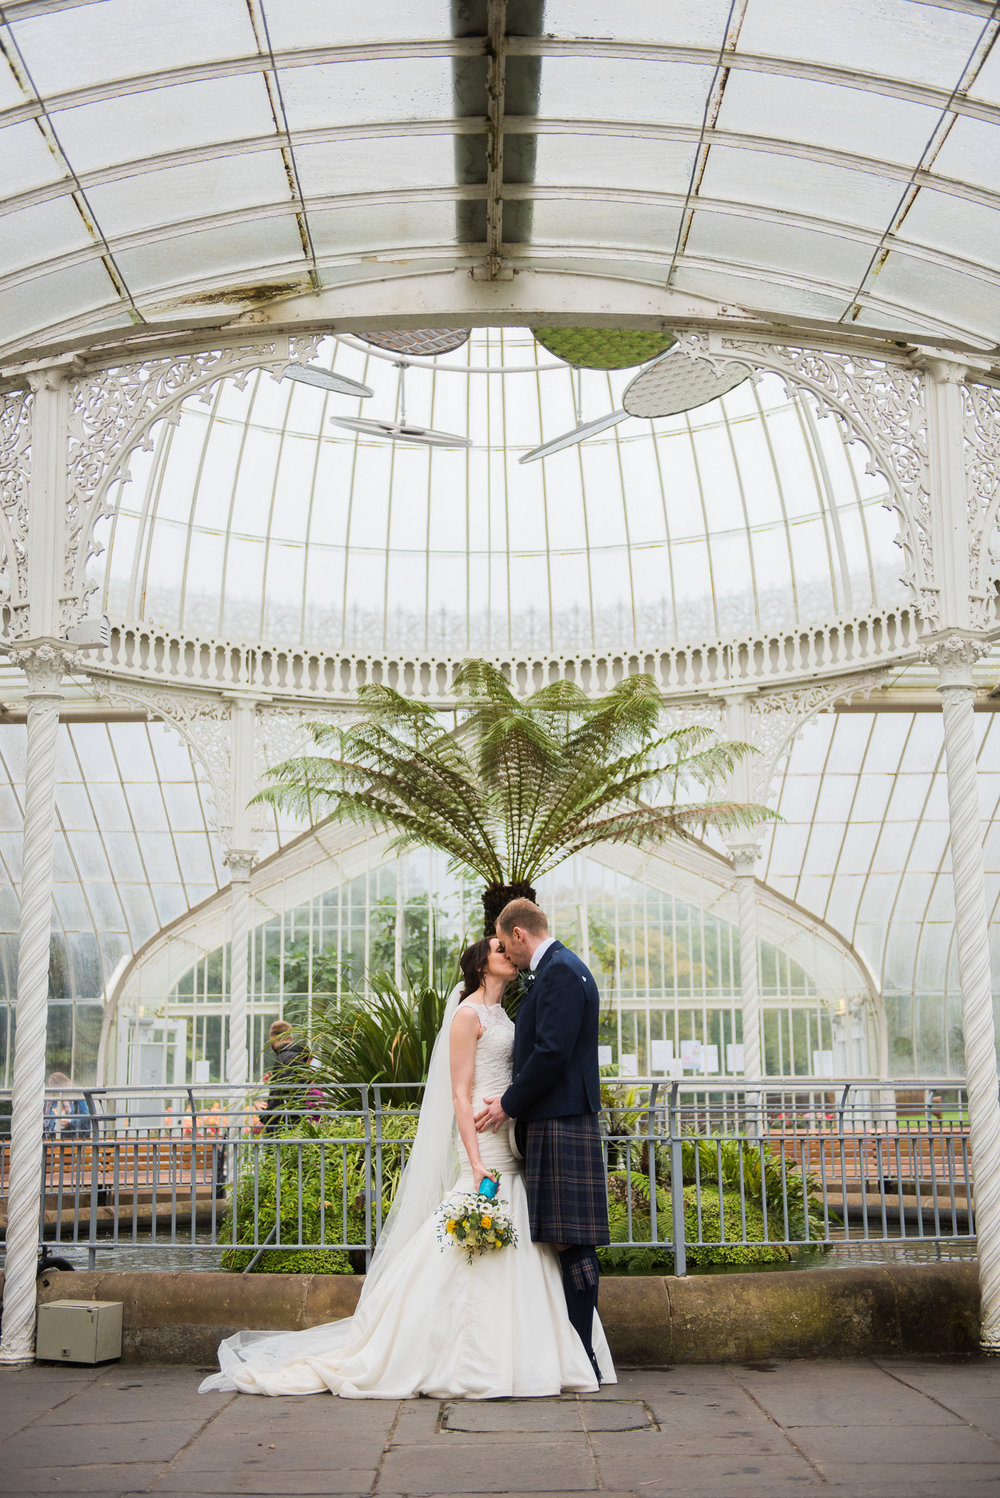 Glasgow Botanic Gardens Wedding